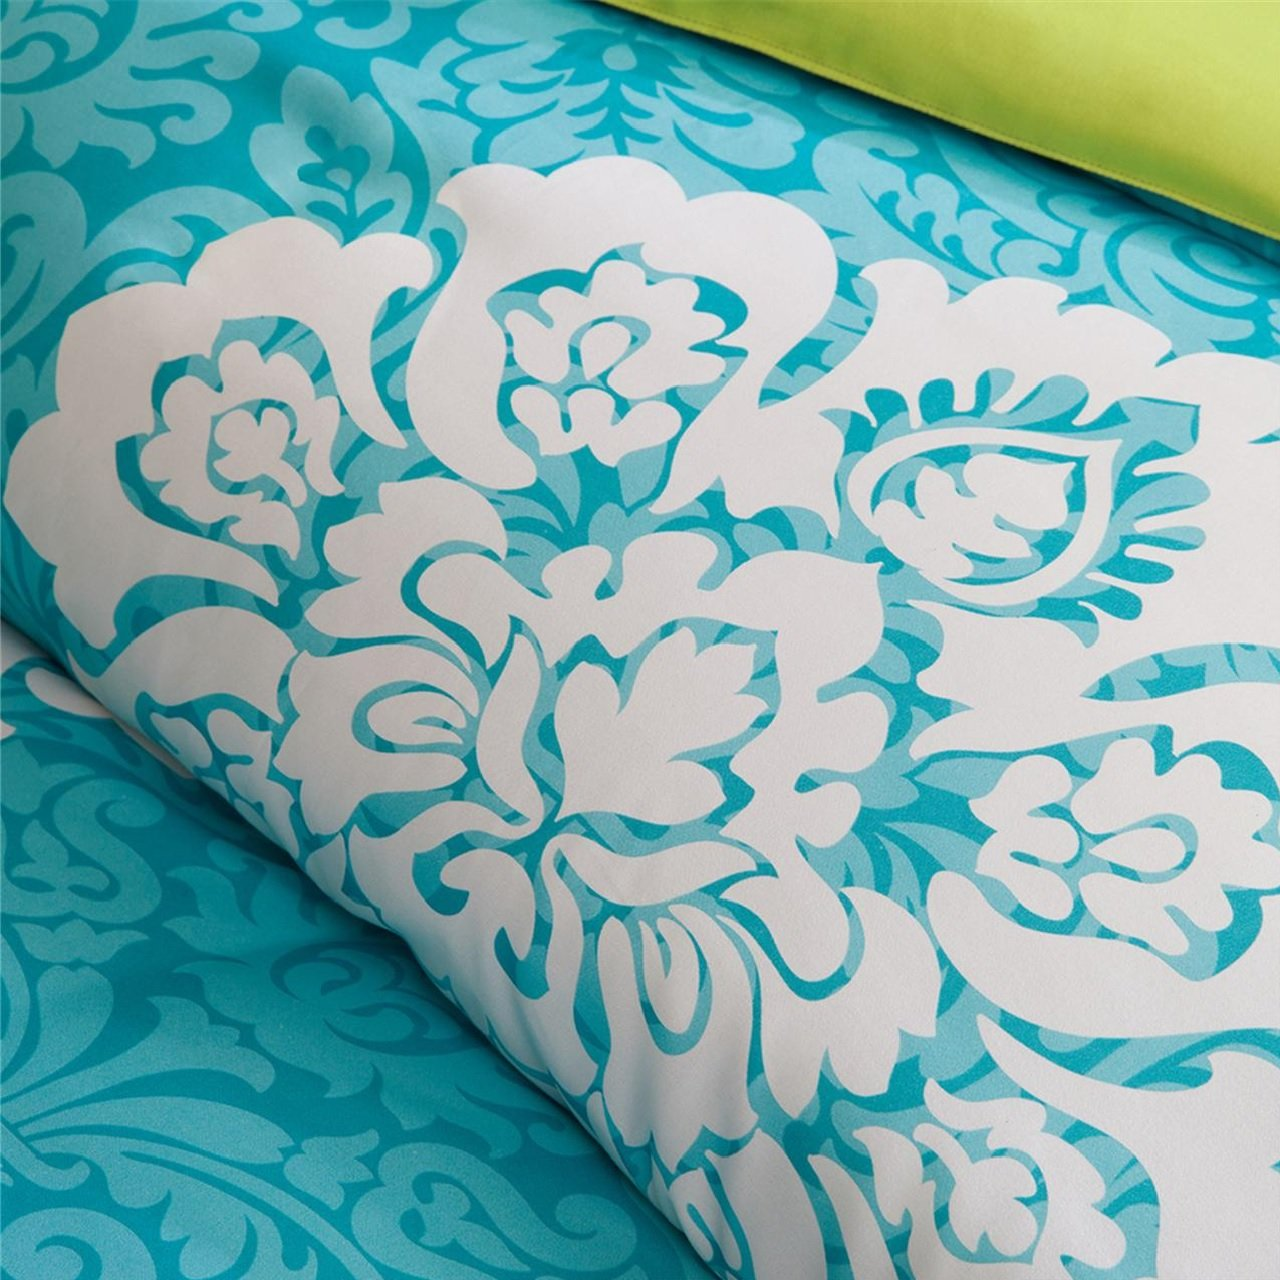 Modern Teen Bedding Girls 4 Piece Reversible Comforter Set Aqua Teal Blue Lime Green Floral Damask Print. Includes Bonus Sleep Mask From Designer Home. (Twin/twin Xl) by ID (Image #3)